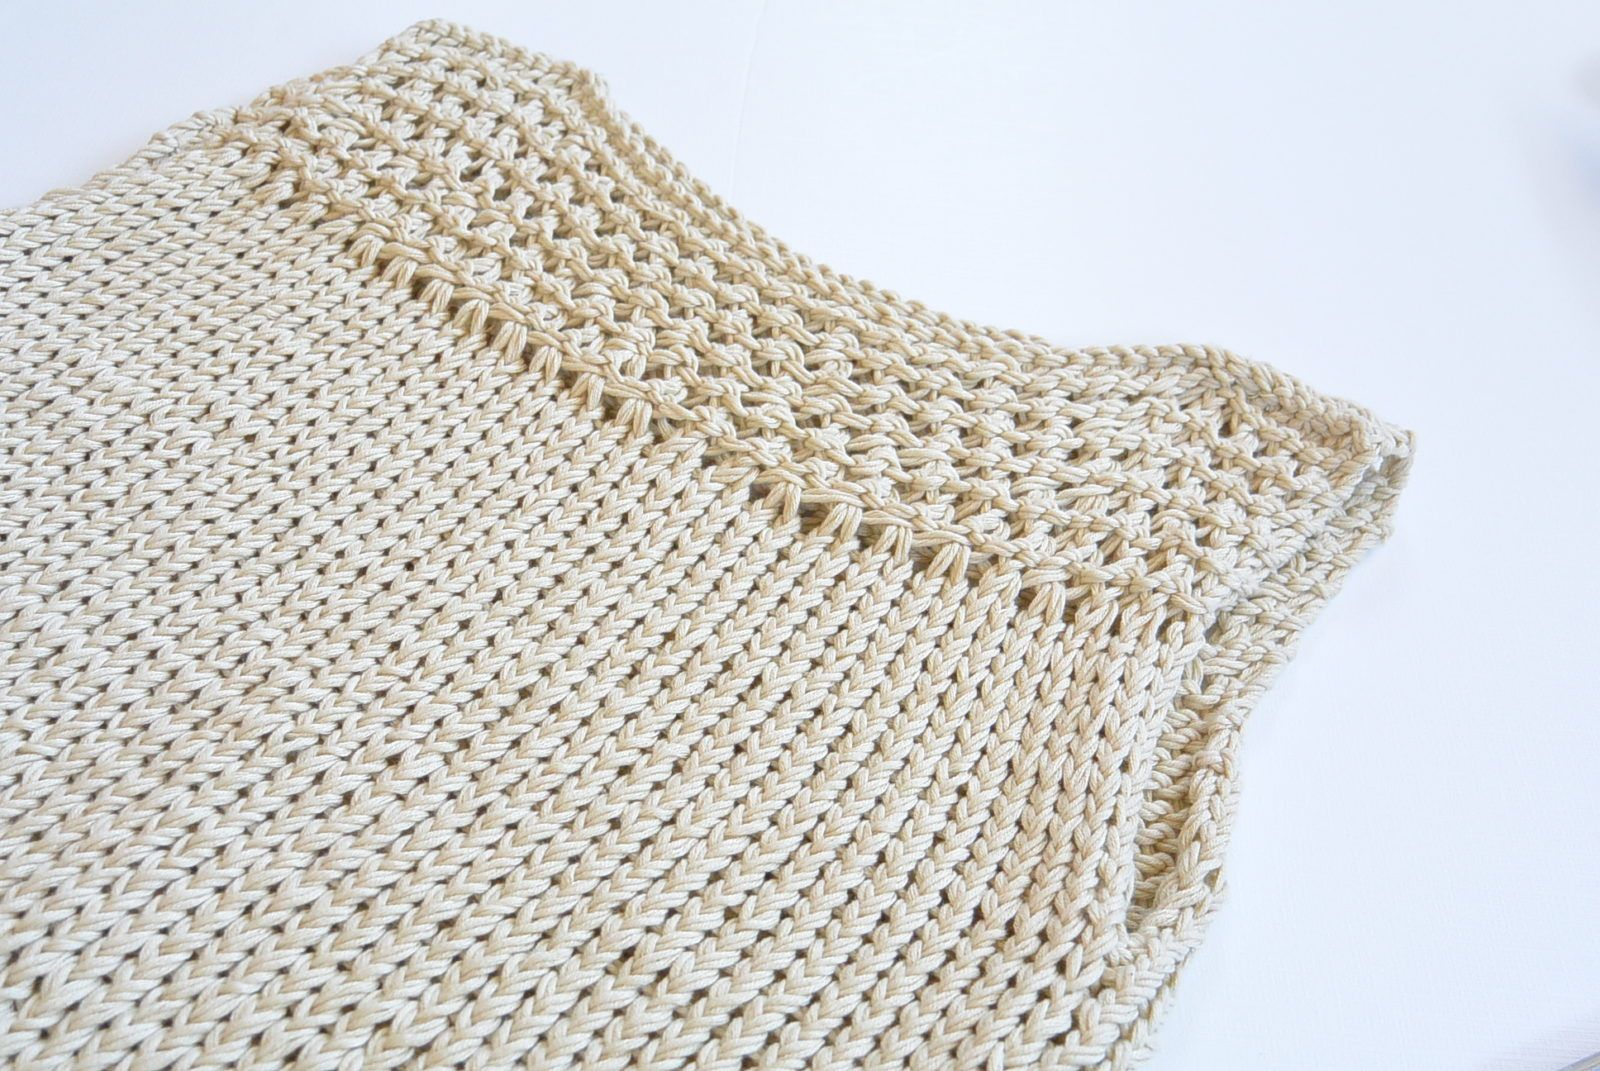 Summer Vacation Knit Top Pattern | Broomstick lace, Patterns and Summer